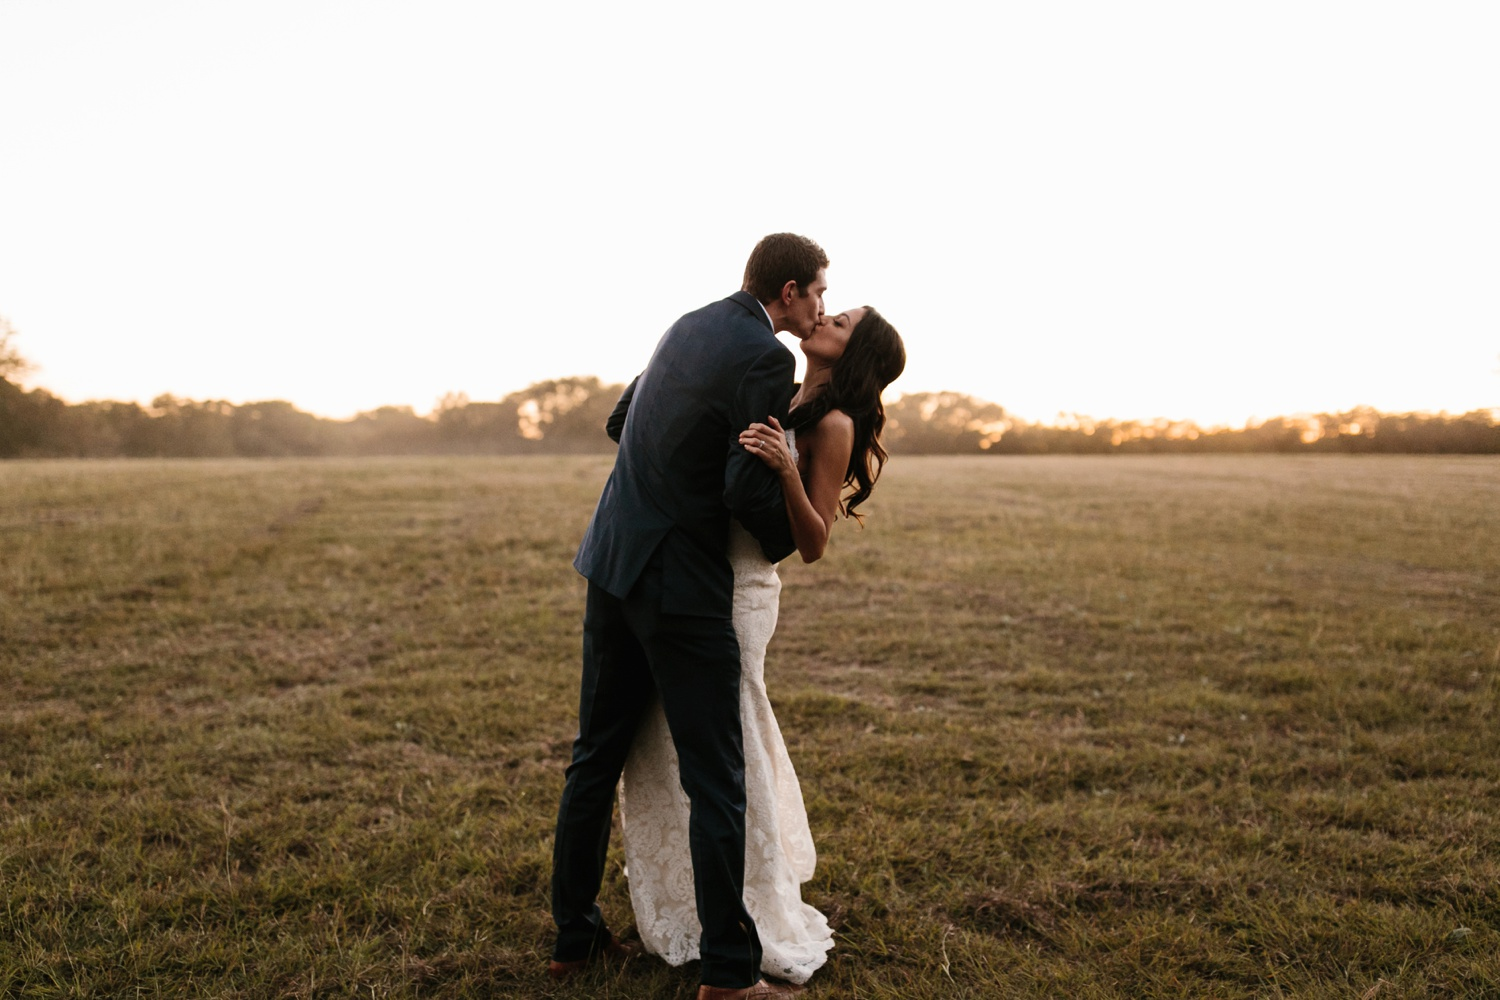 Erica + Henry | a bohemian inspired wedding at Chandlers Gardens in Salina, TX by North Texas Wedding Photographer Rachel Meagan Photography 126